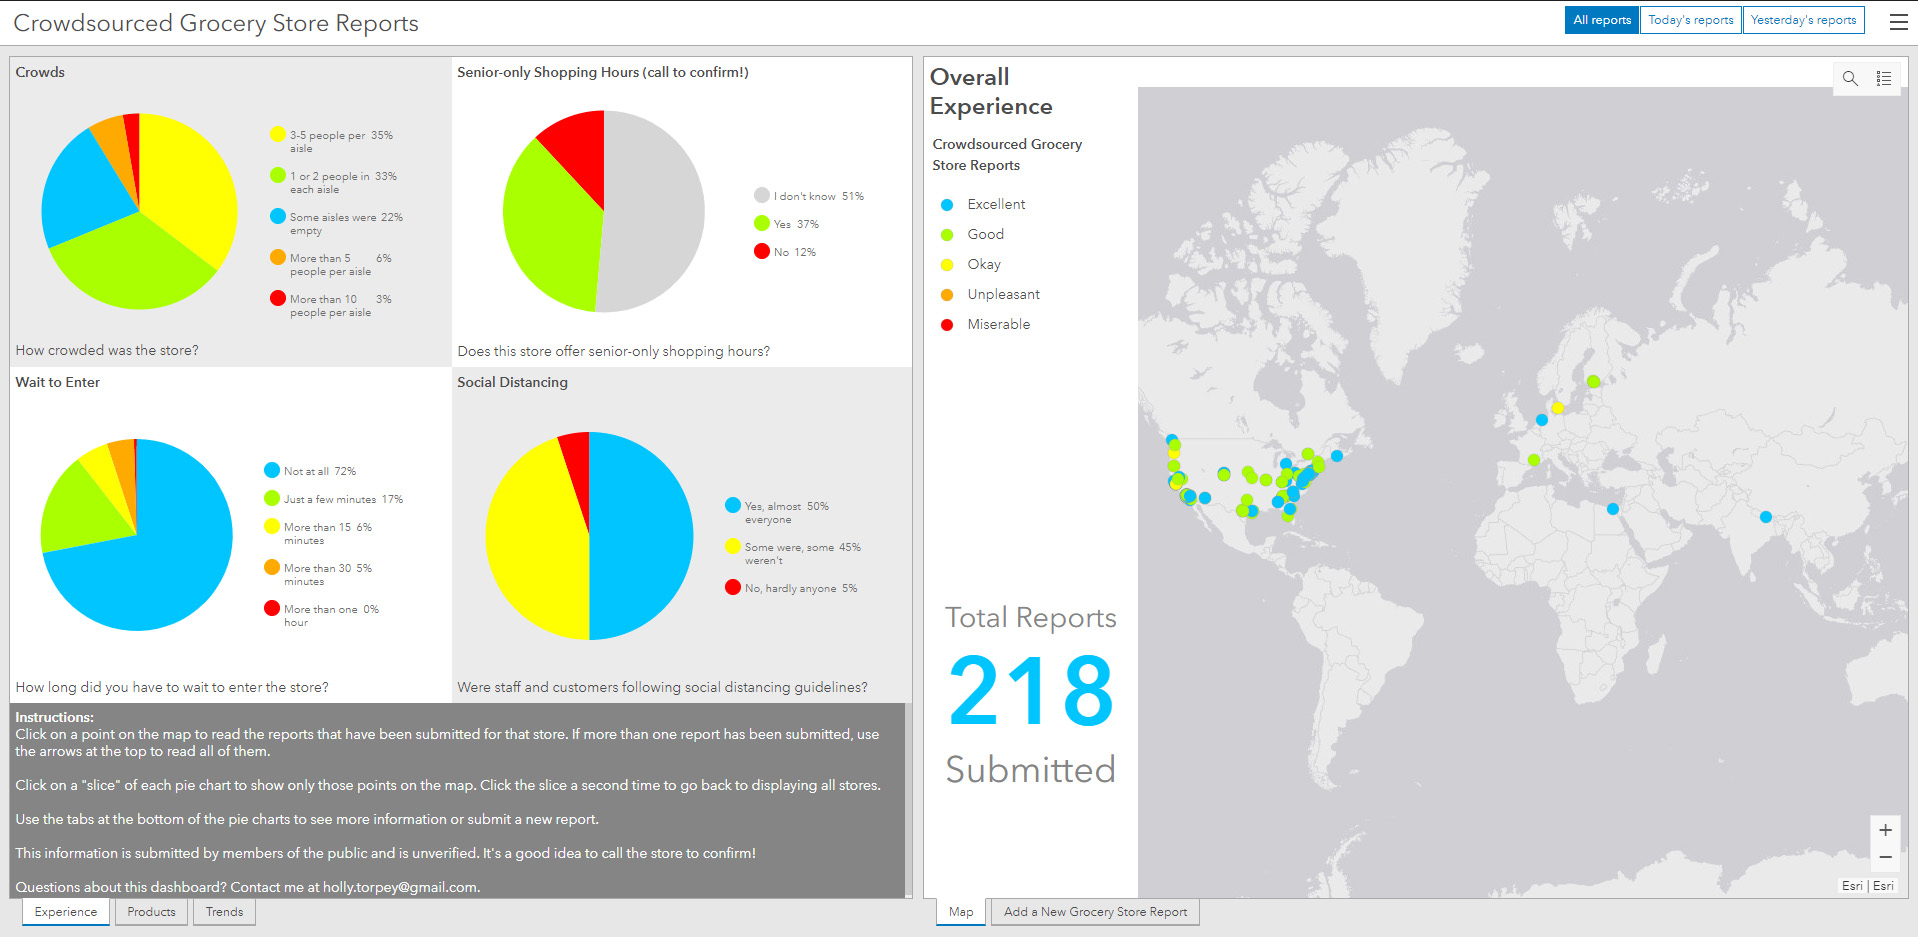 Global Crowdsource Grocery Store Dashboard